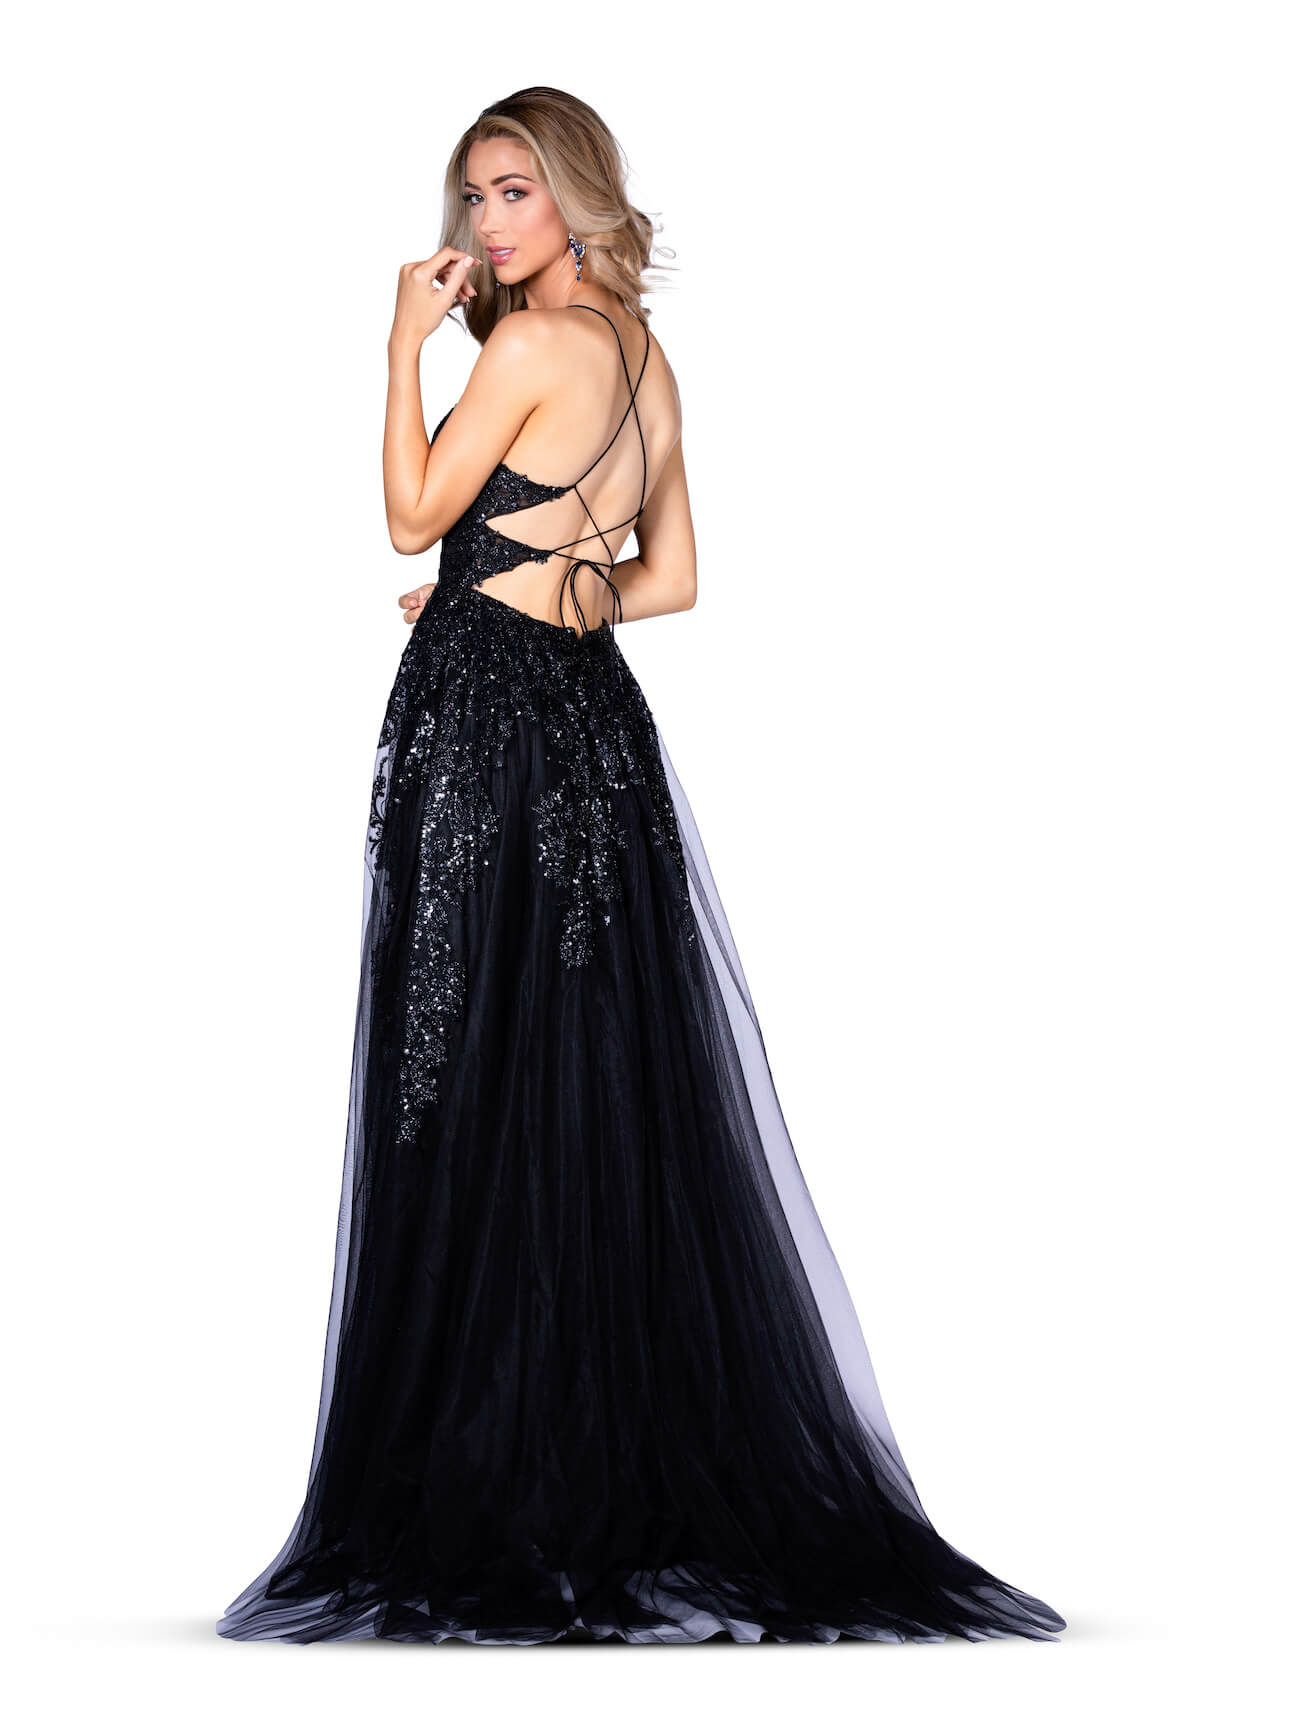 Vienna Black Size 2 Sweetheart Backless A-line Dress on Queenly